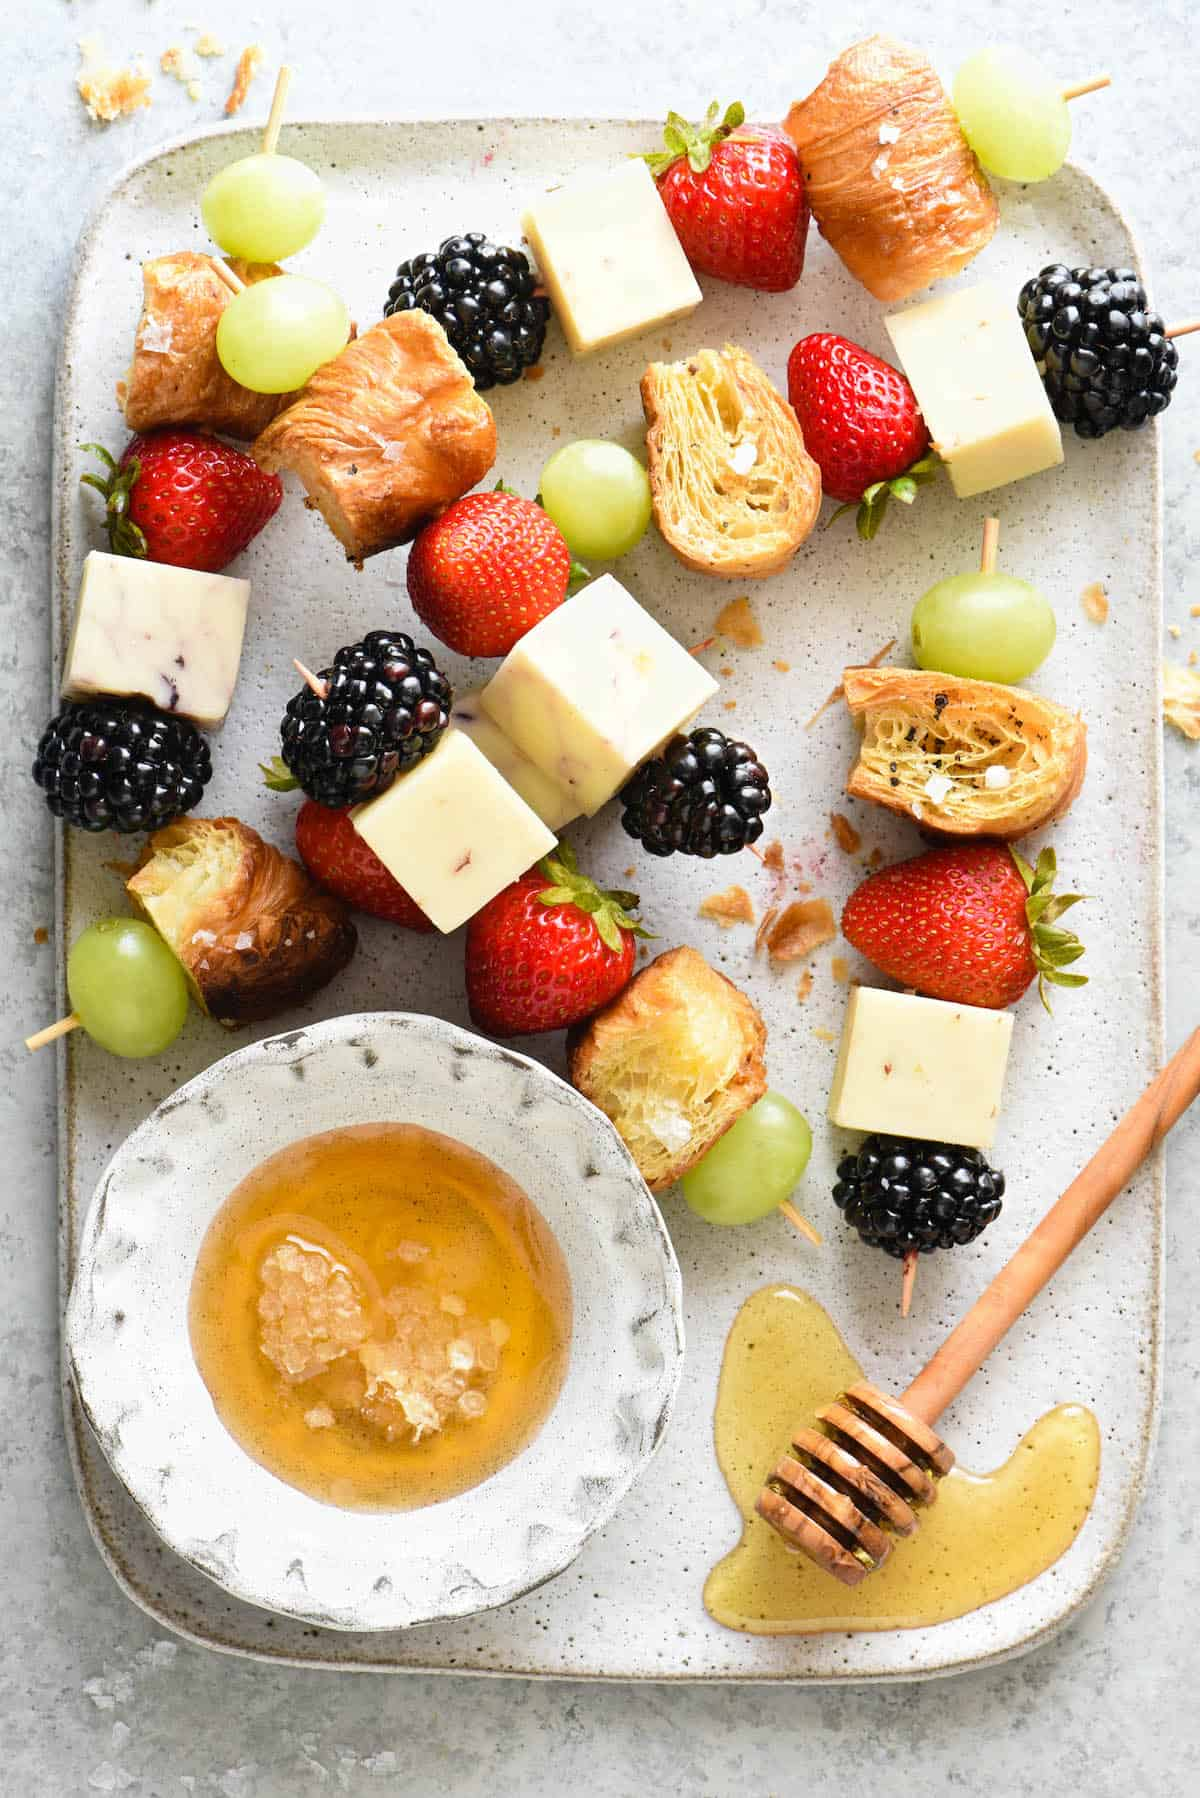 These fresh Fruit and Cheese Kabobs with Croissant Croutons are a nutritious snack that both kids and adults will love. This colorful combination of sweet fruit, savory cheese and flaky croutons comes together in a snap. | foxeslovelemons.com